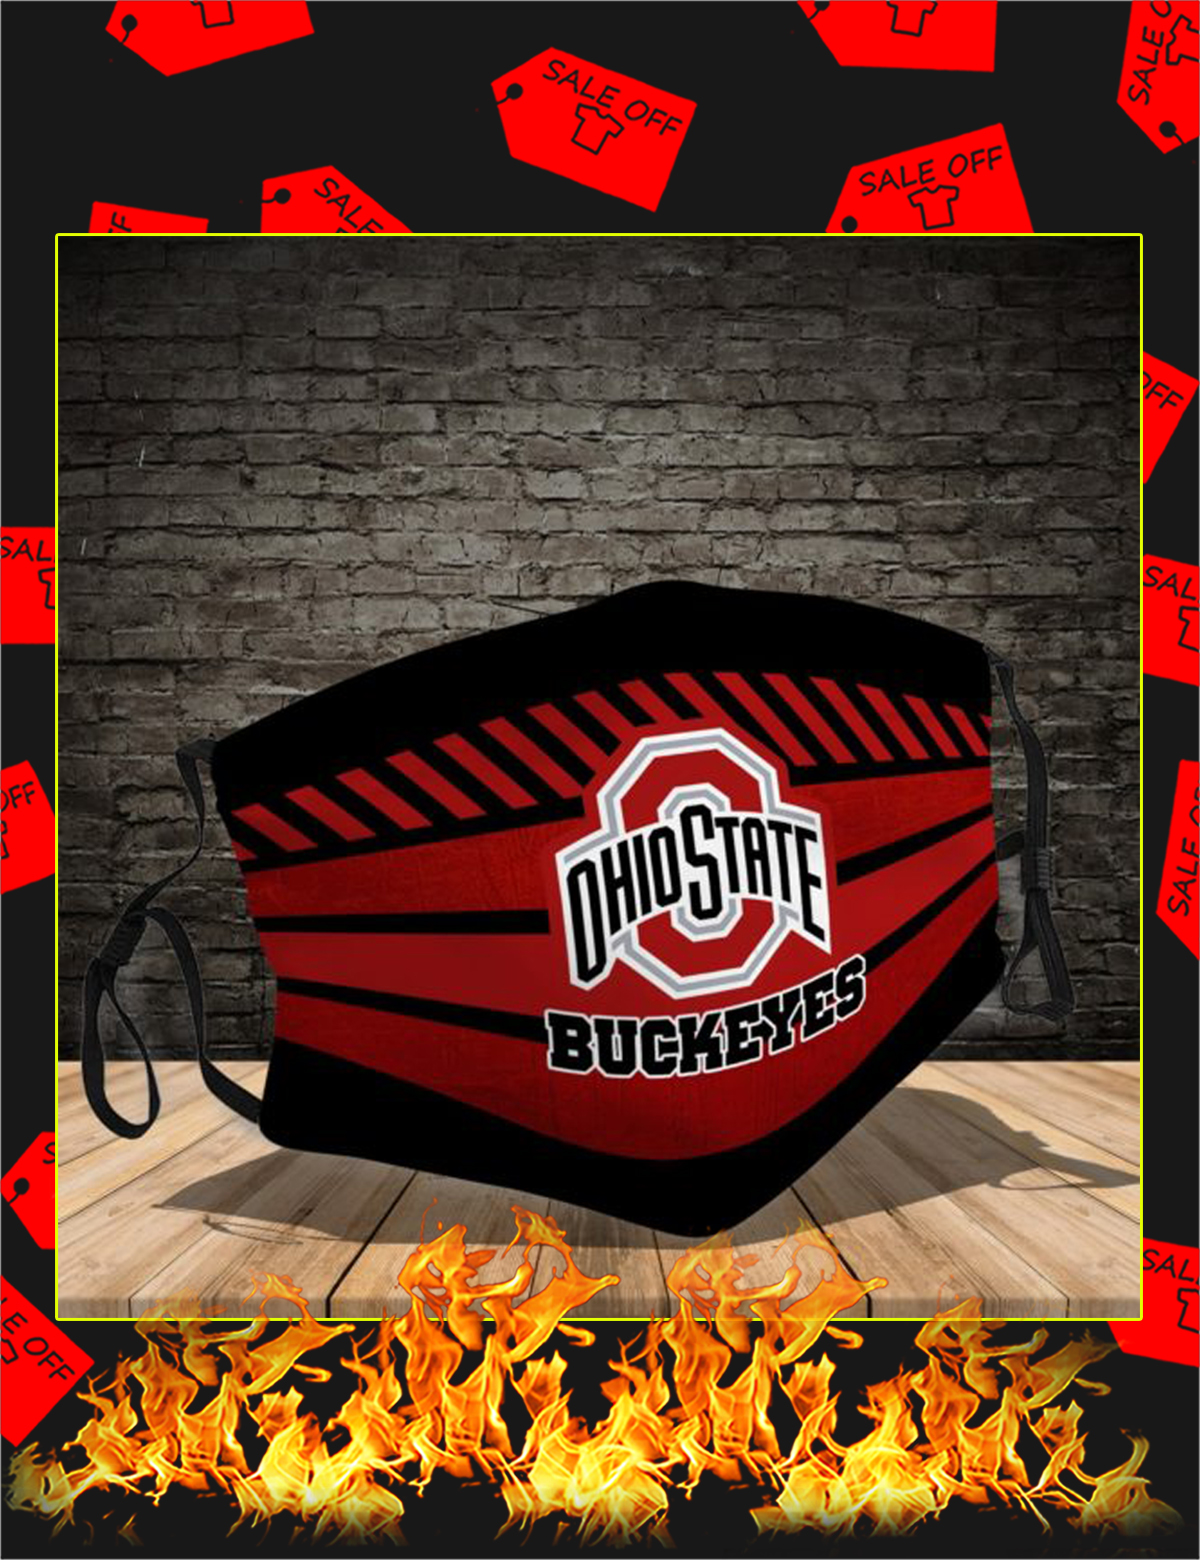 Ohio State Buckeyes Face Mask 2.5 PM - Picture 1